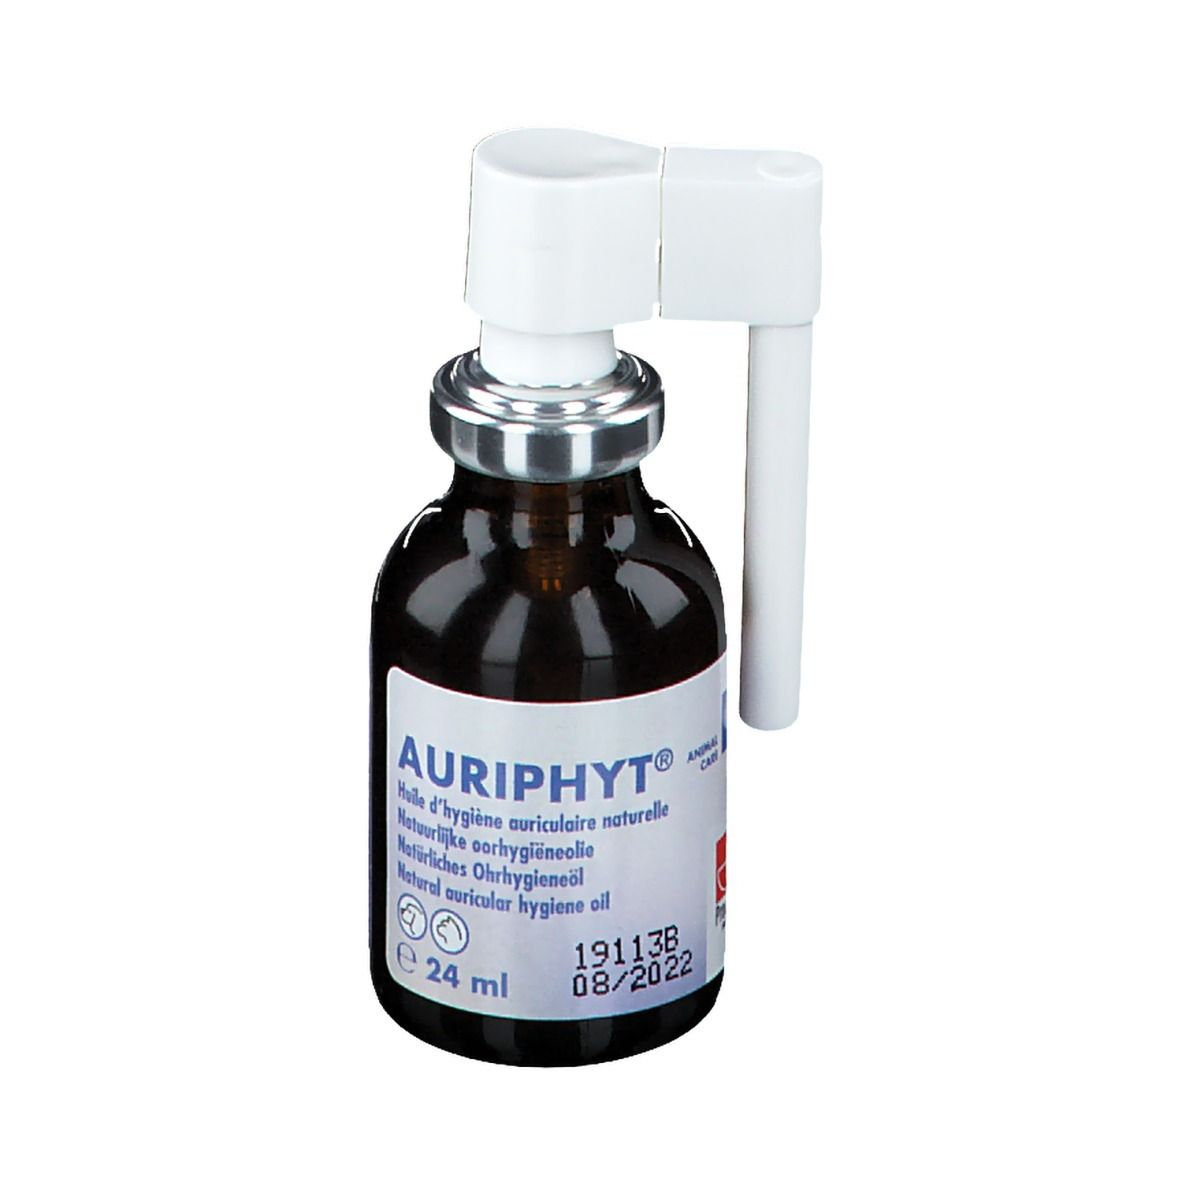 Image of Auriphyt® Animal Care Huile d'hygiène auriculaire